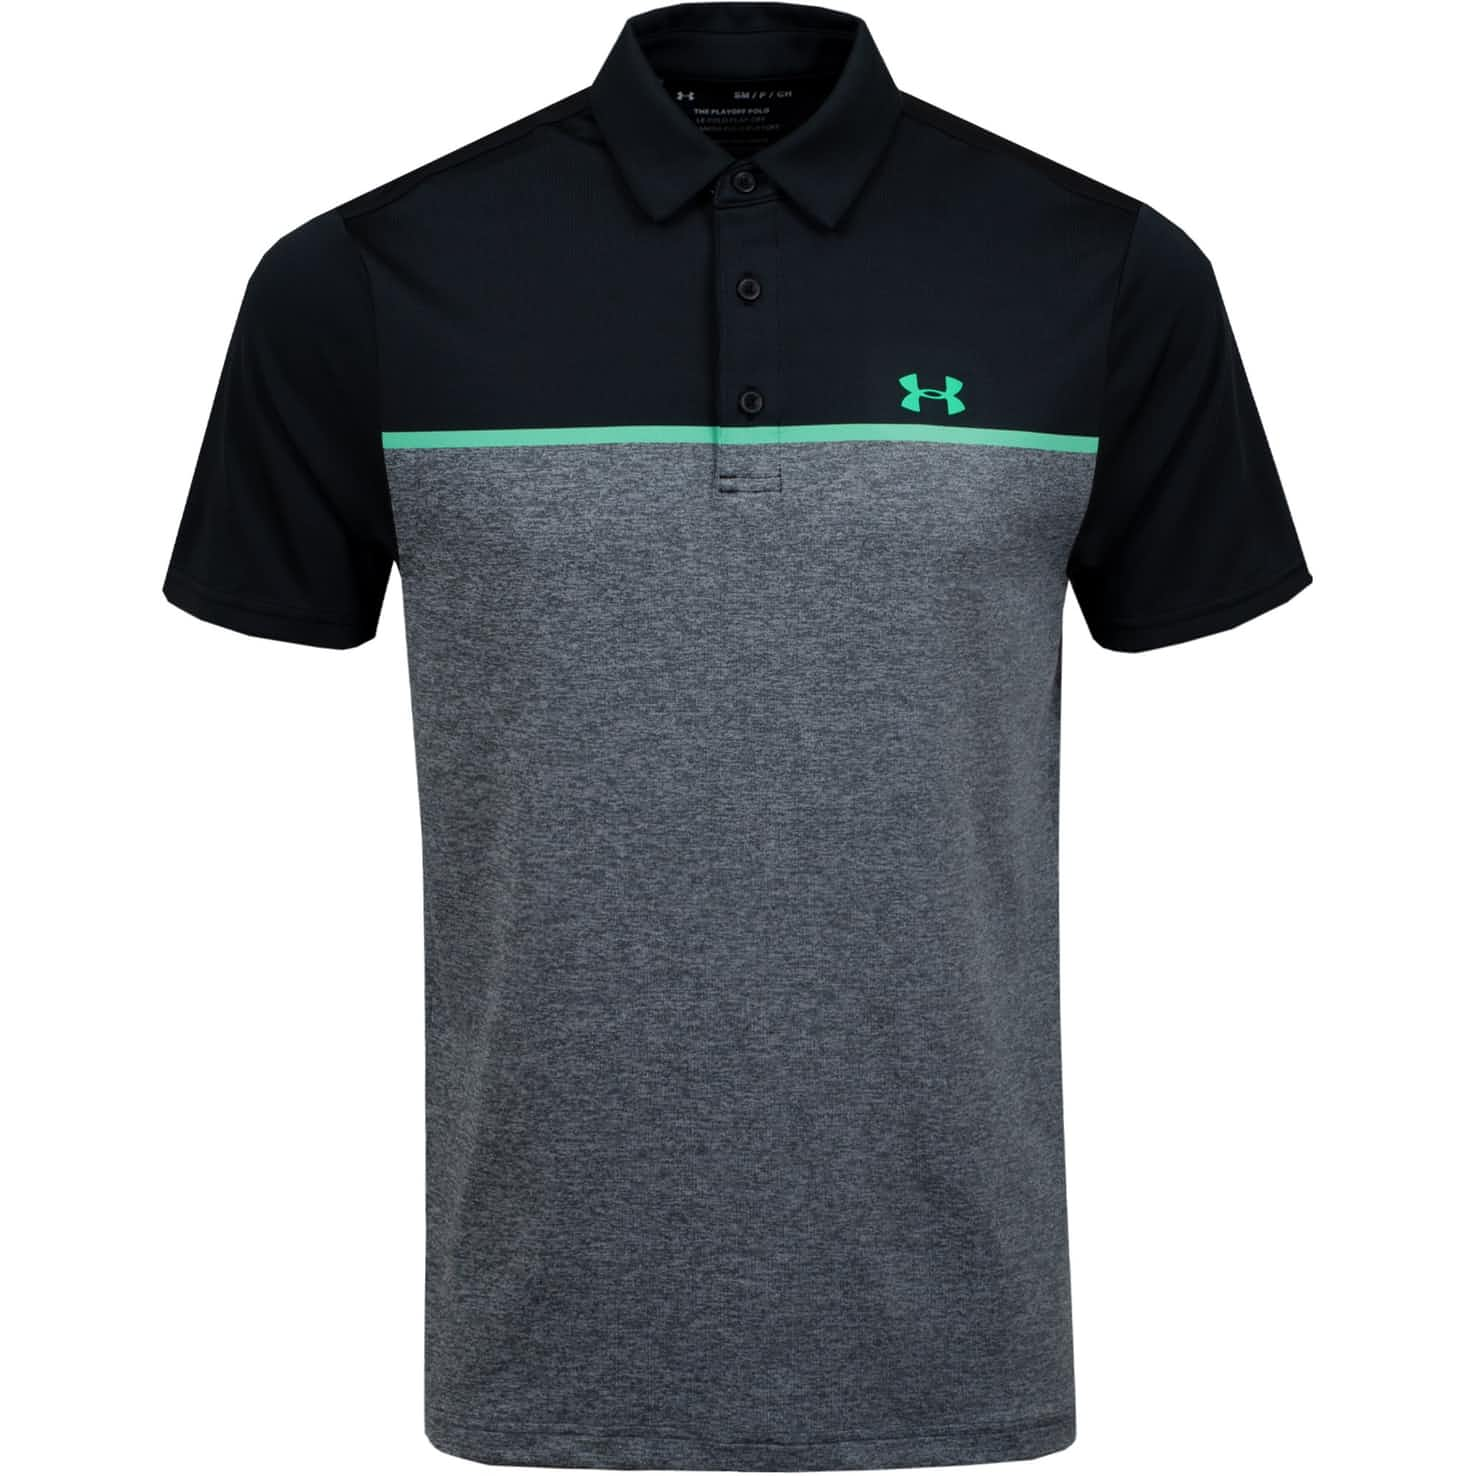 Playoff Polo 2.0 Chest Engineered Black/Pitch Grey/Vapor Green - SS20